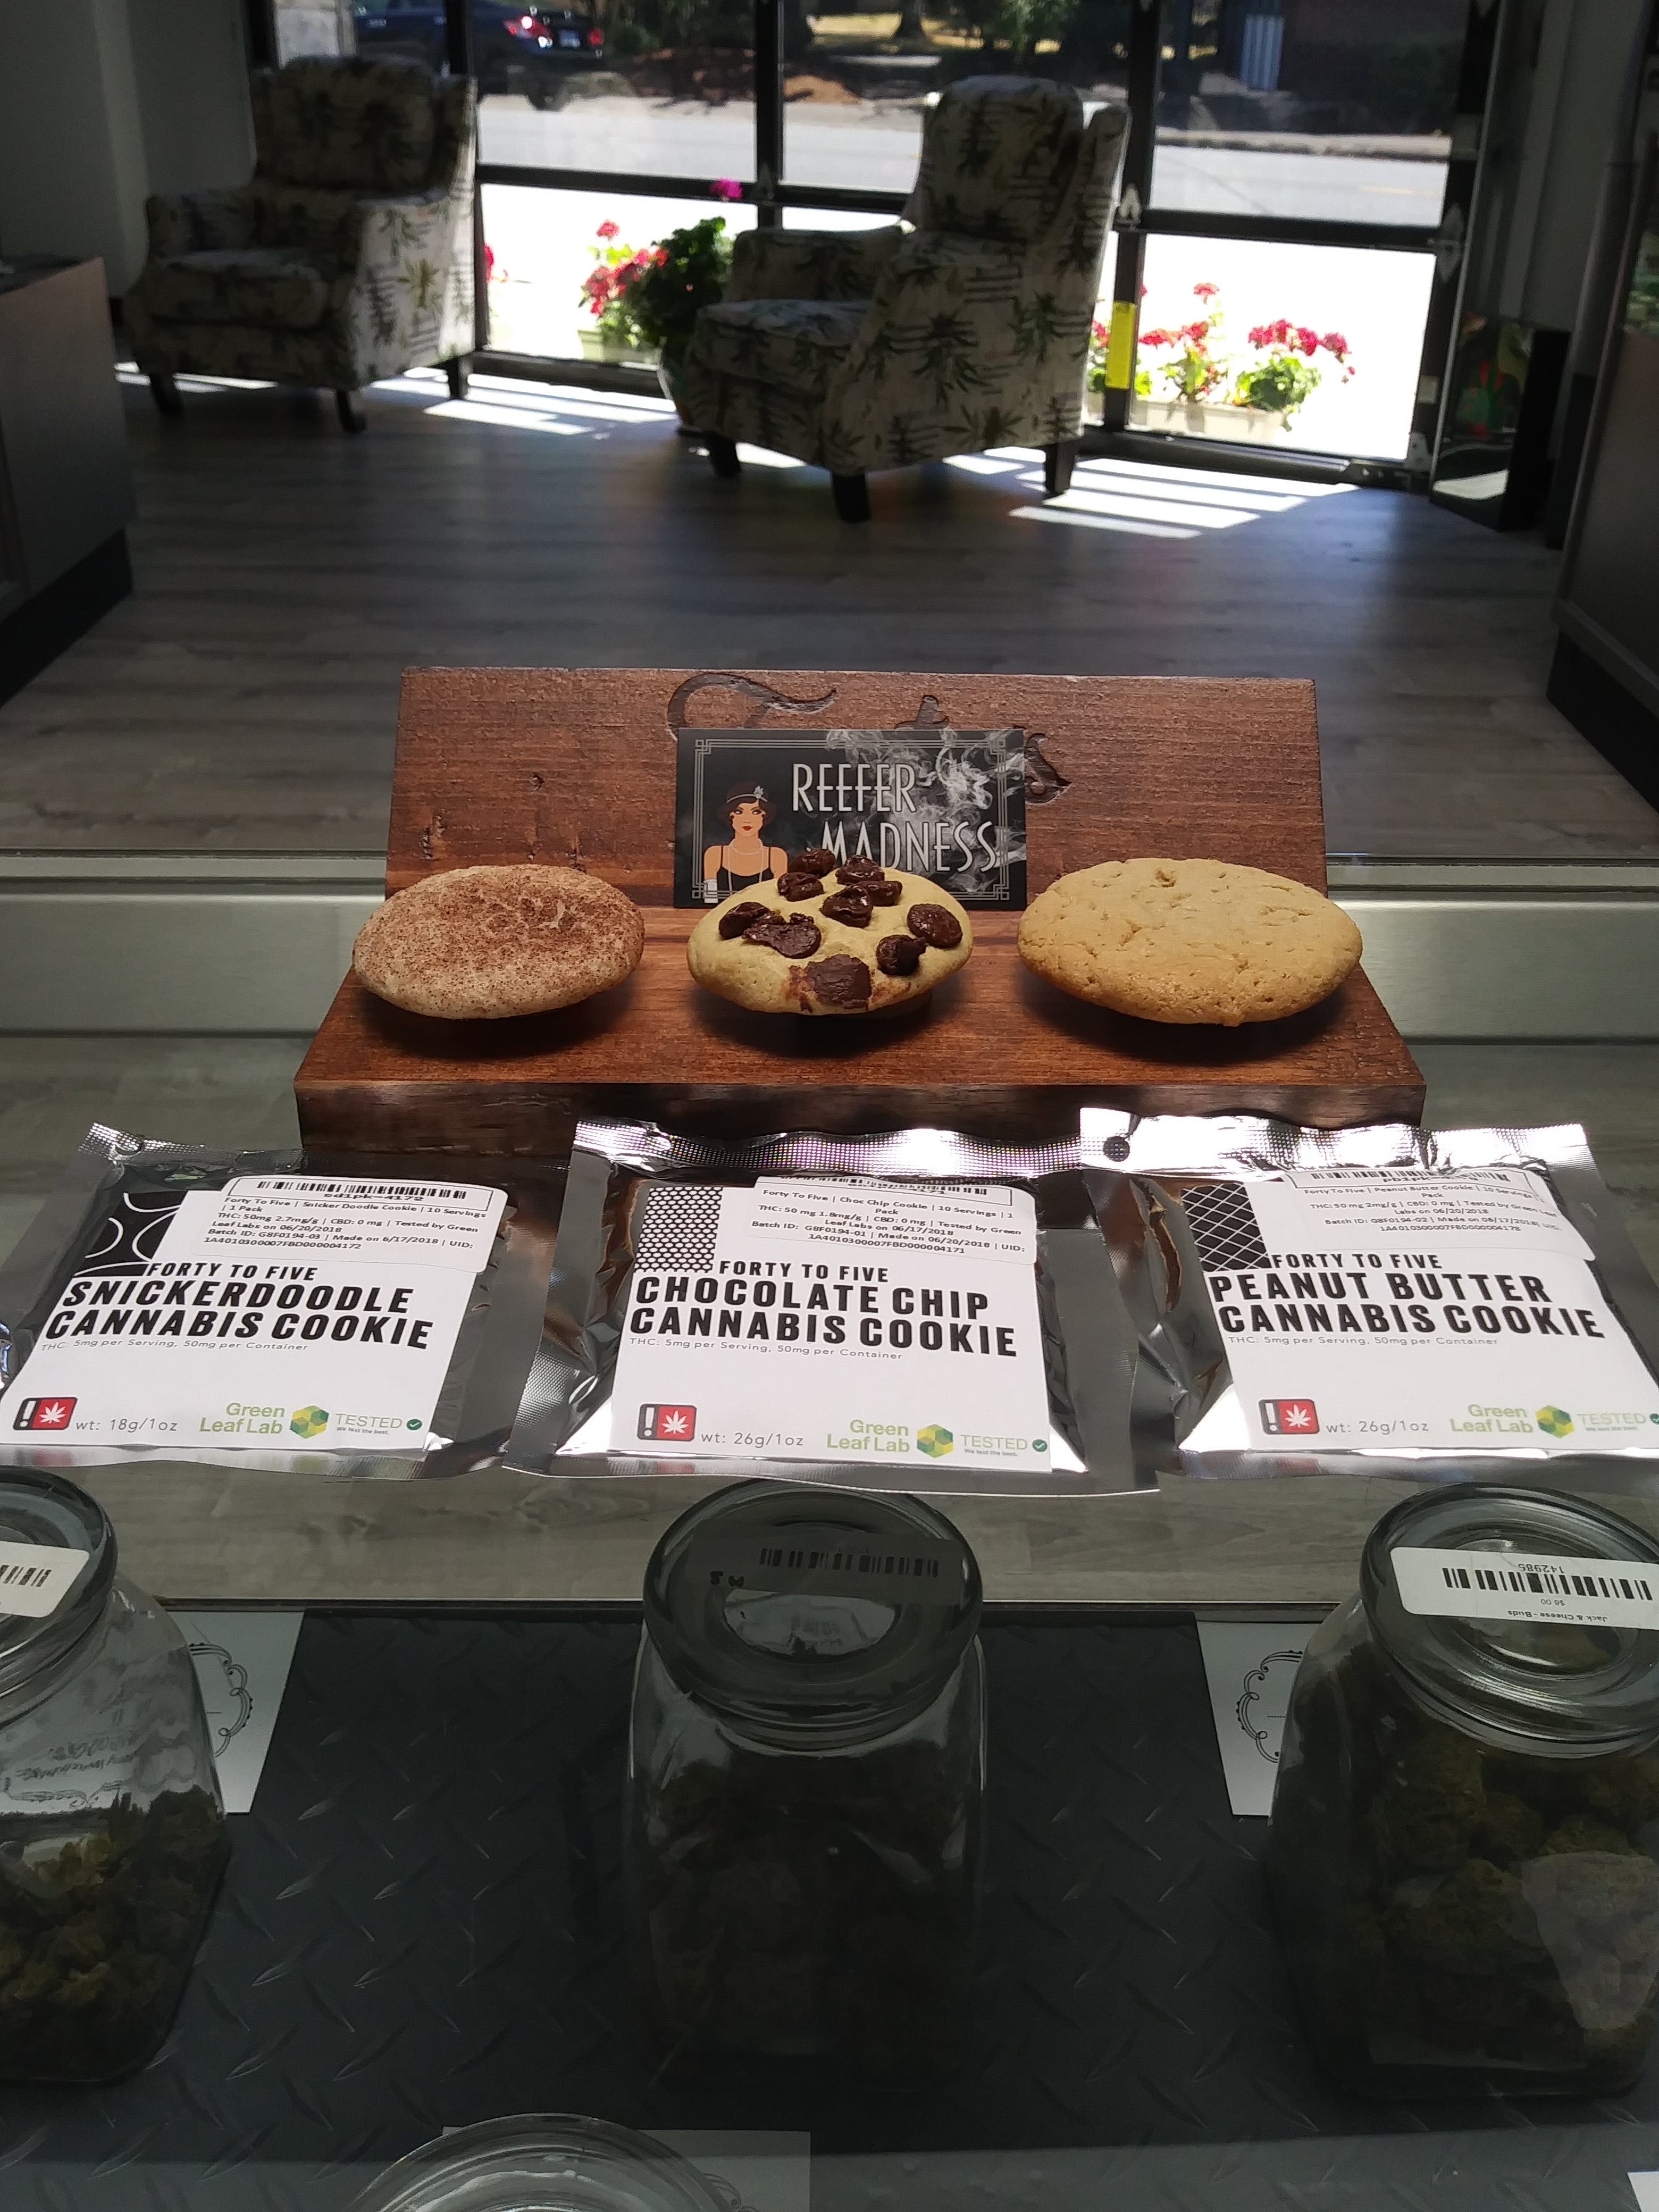 edible-forty-to-five-snickerdoodle-cannabis-cookie